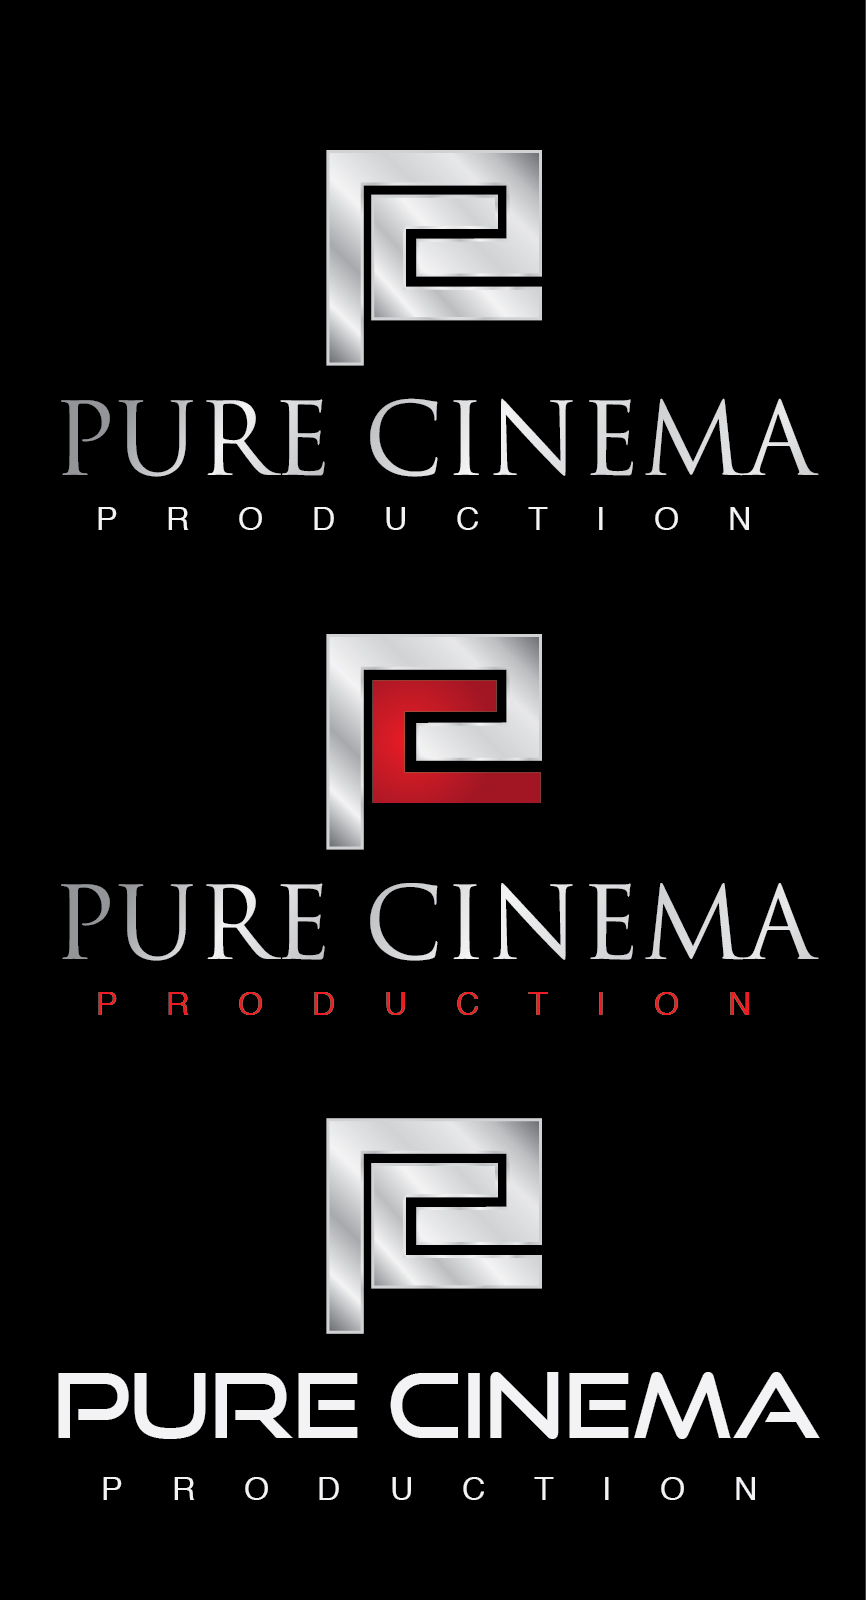 Logo Design by mediaproductionart - Entry No. 23 in the Logo Design Contest Imaginative Logo Design for Pure Cinema.